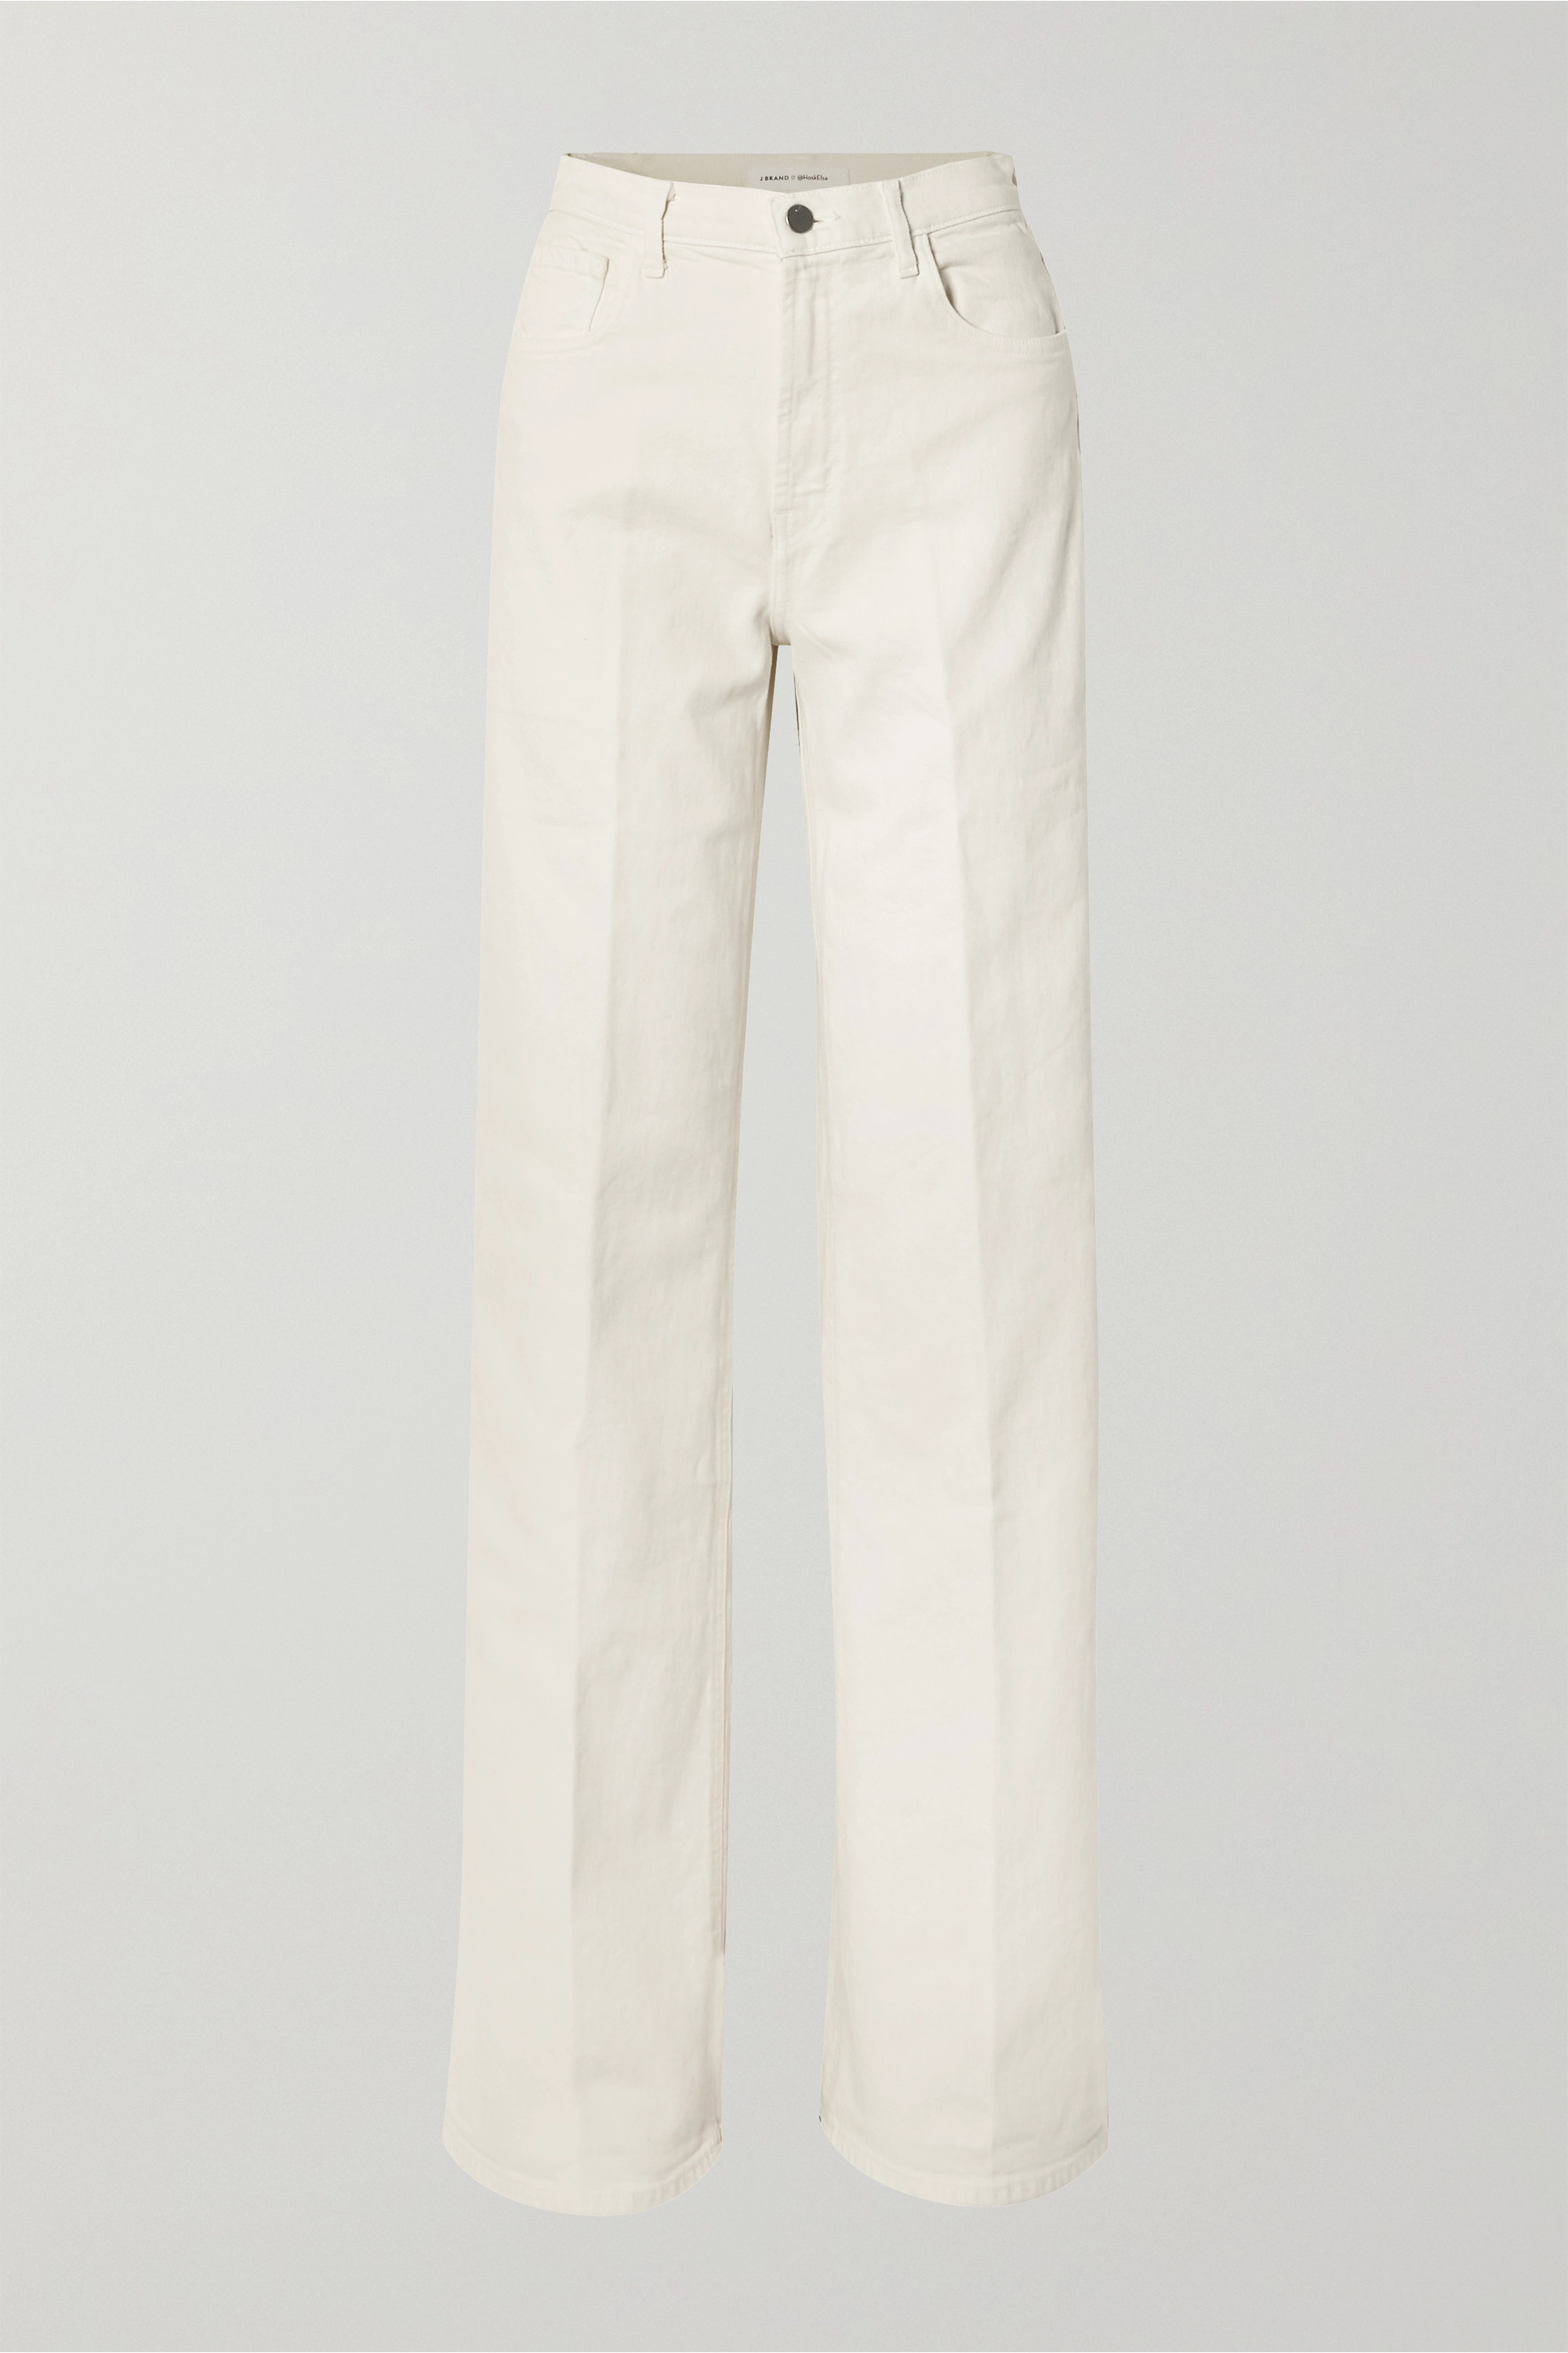 J Brand + Elsa Hosk Monday high-rise wide-leg jeans